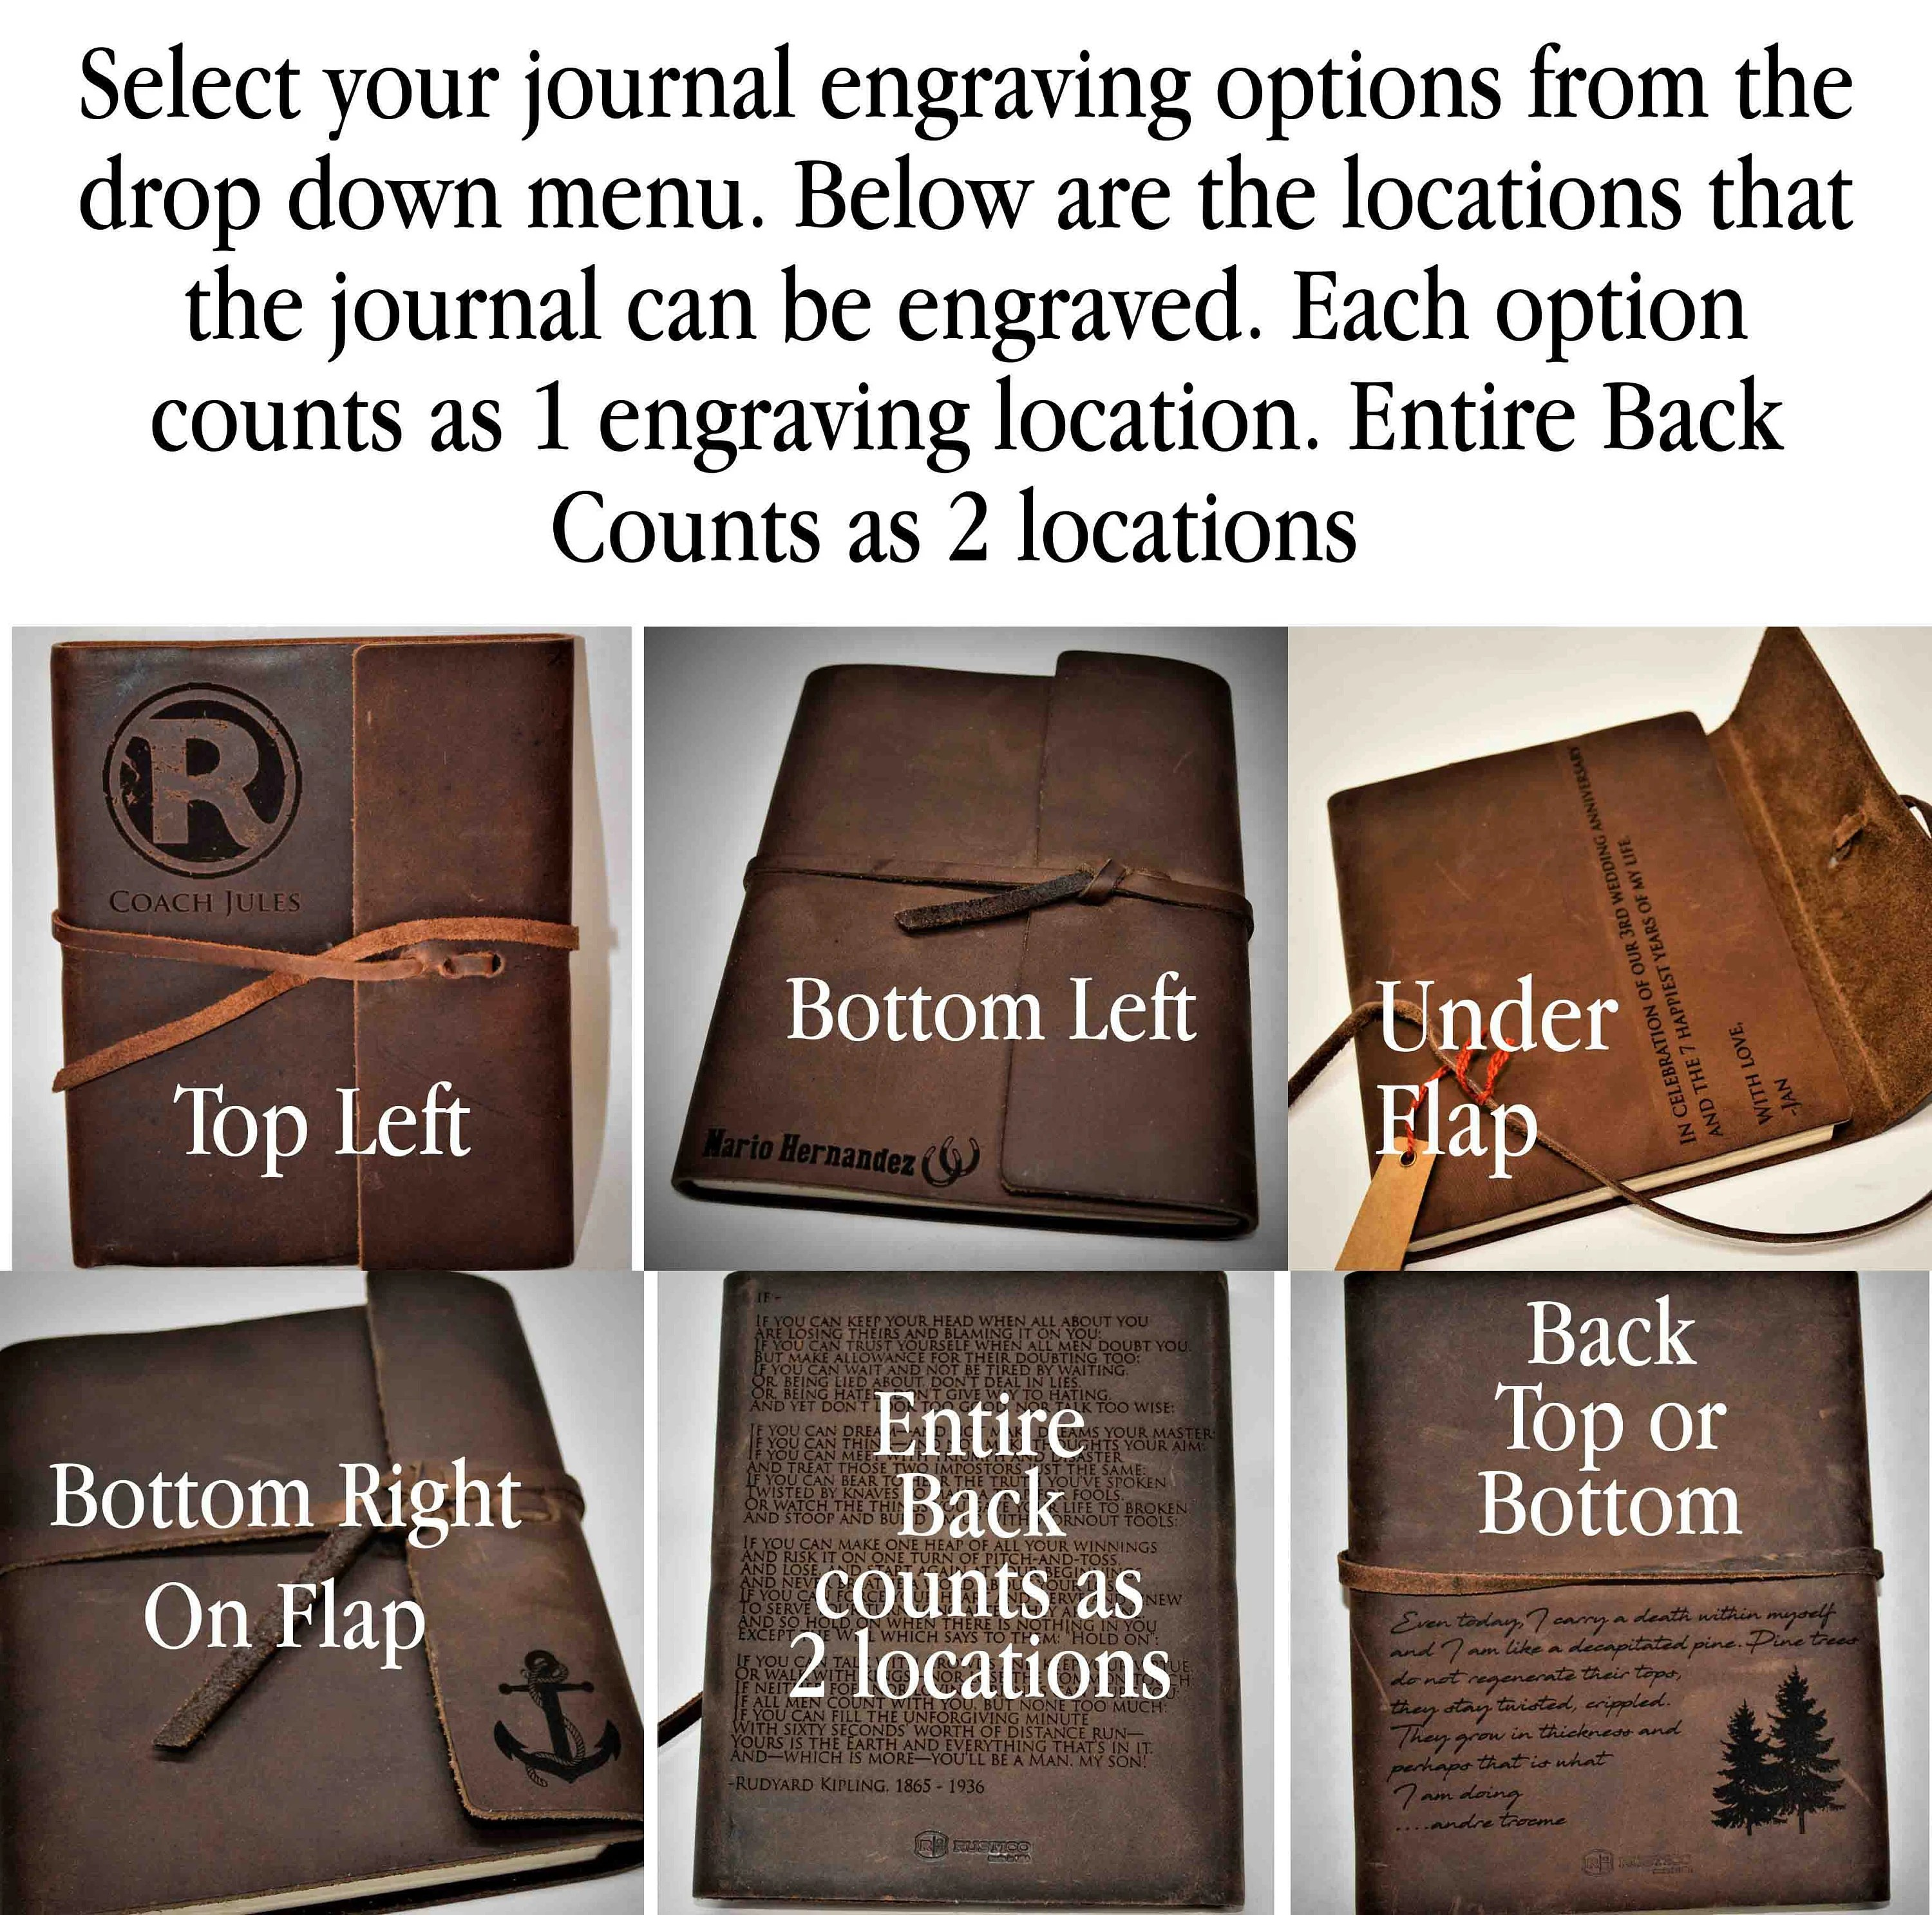 Premium Leather Journal Personalized Custom Engraved image 3